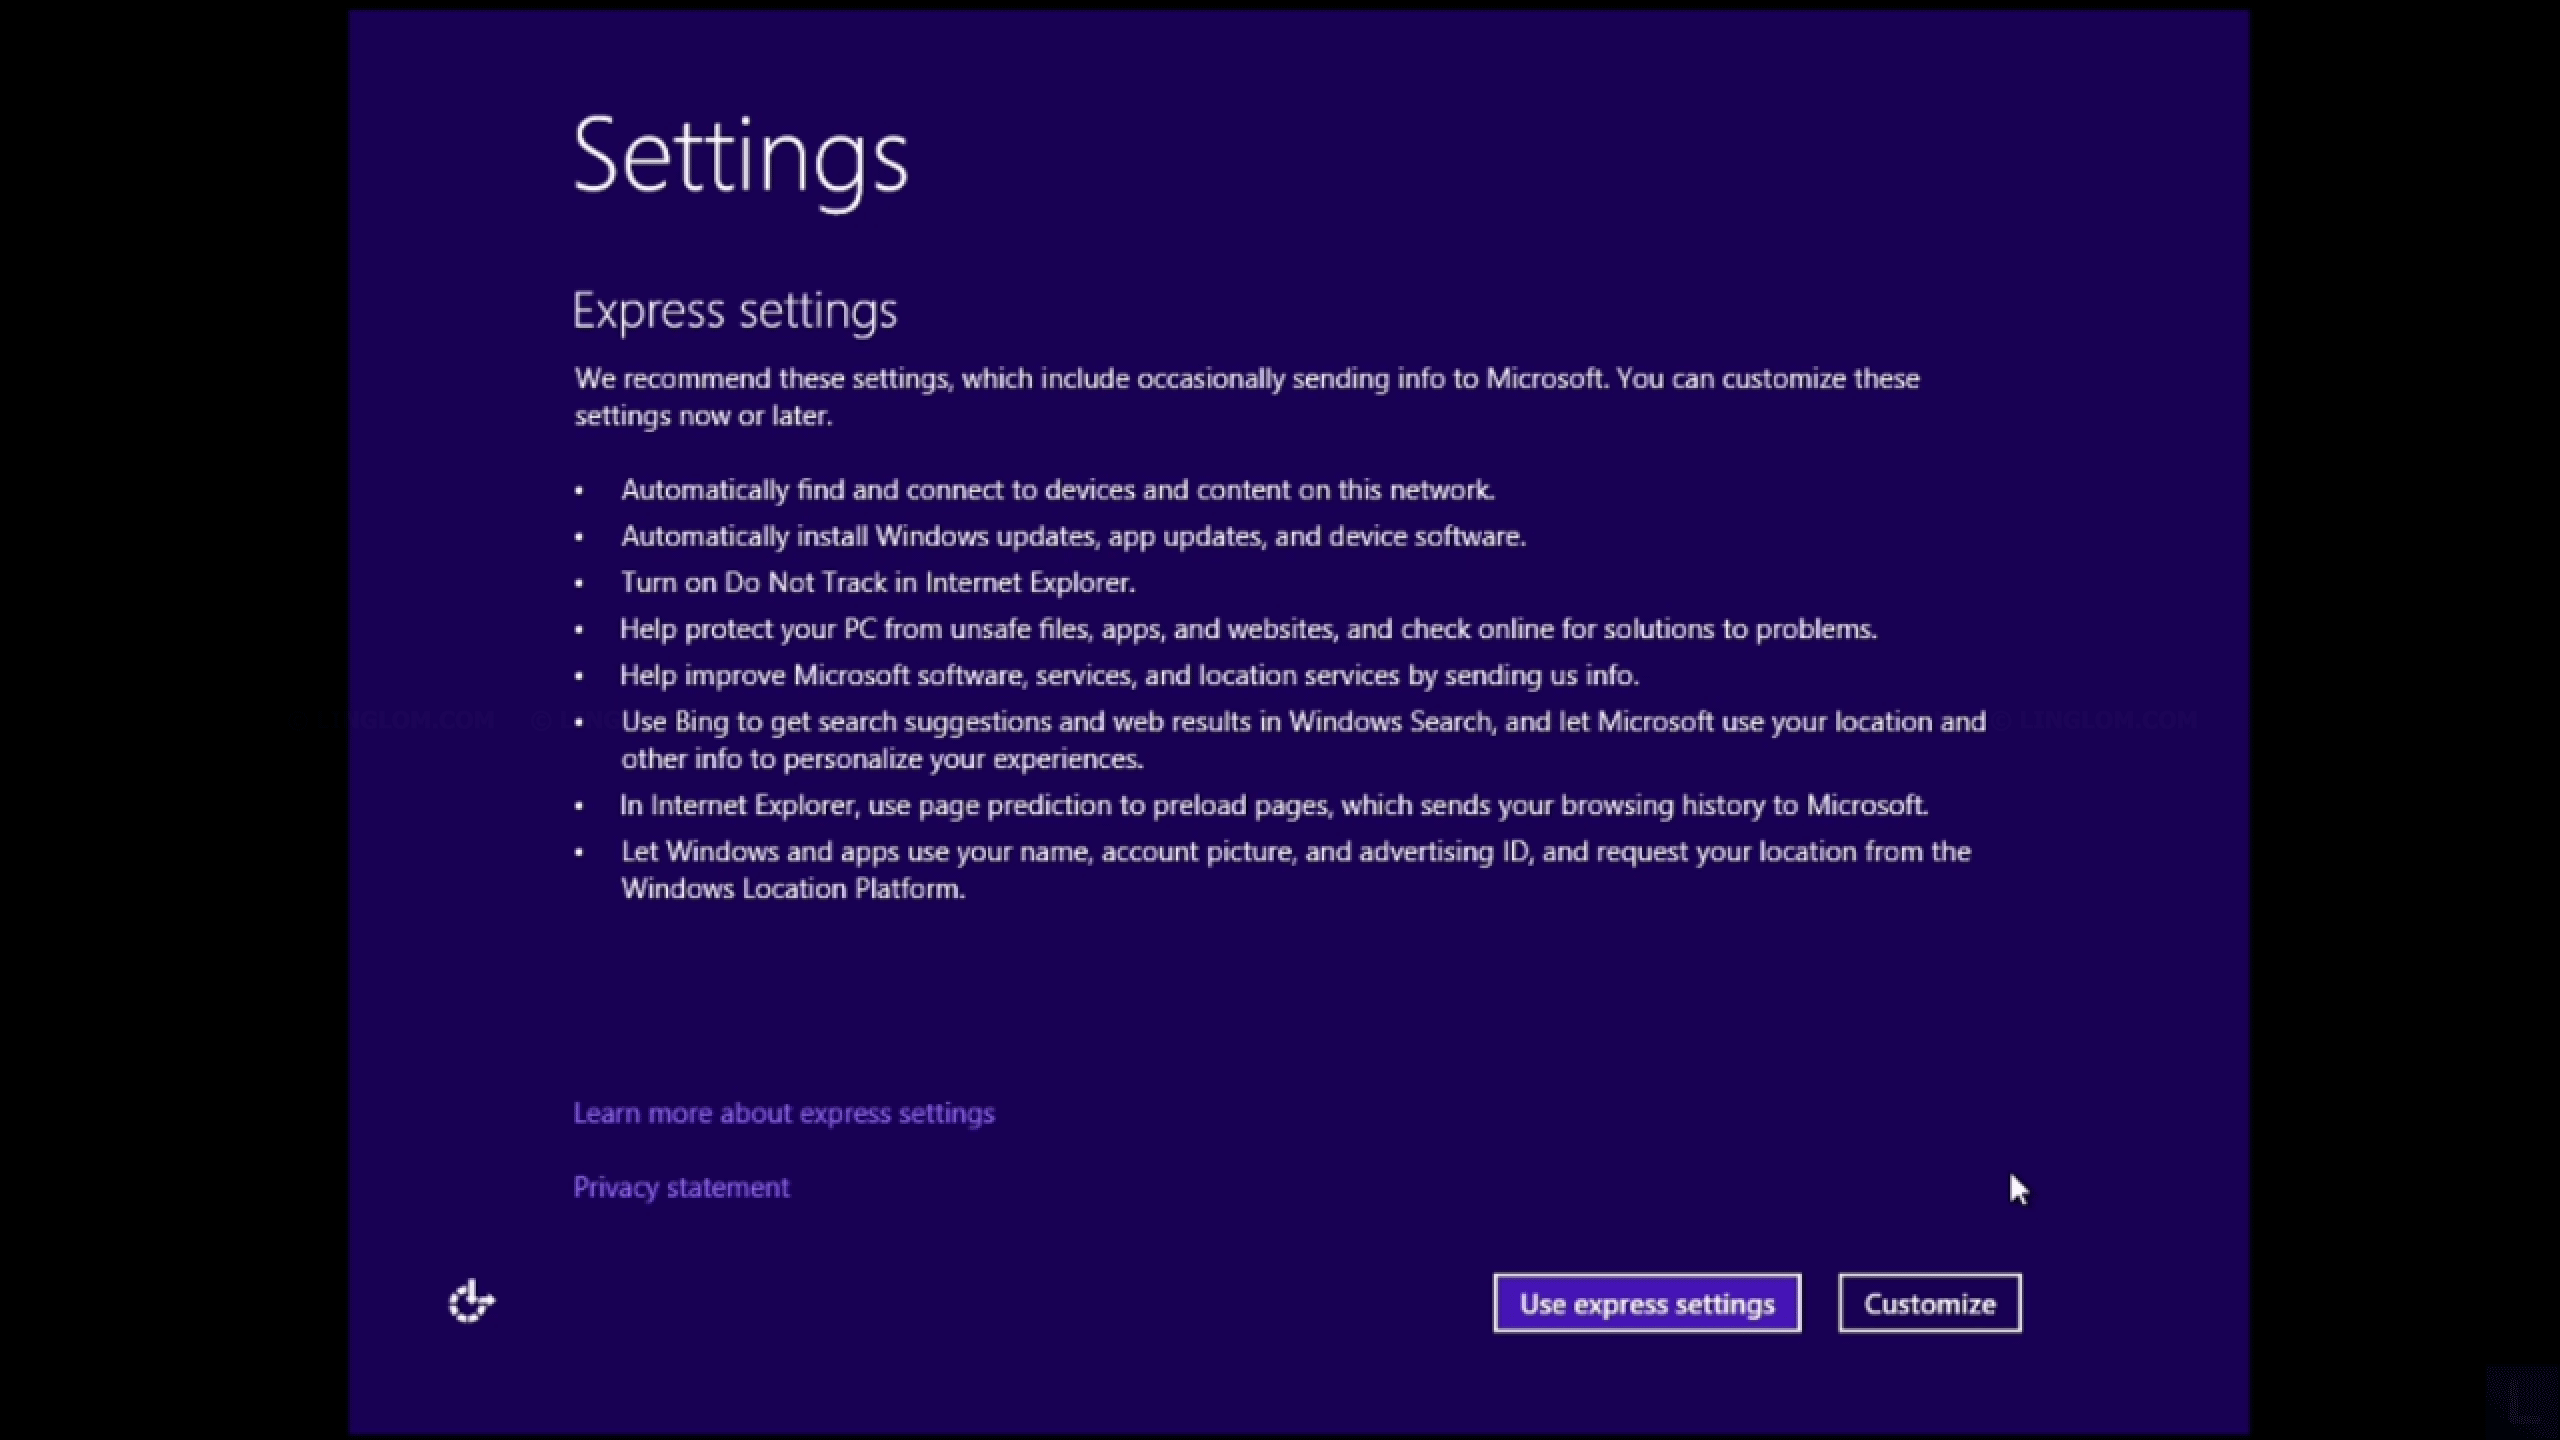 Update to Windows 8.1 - Use express settings